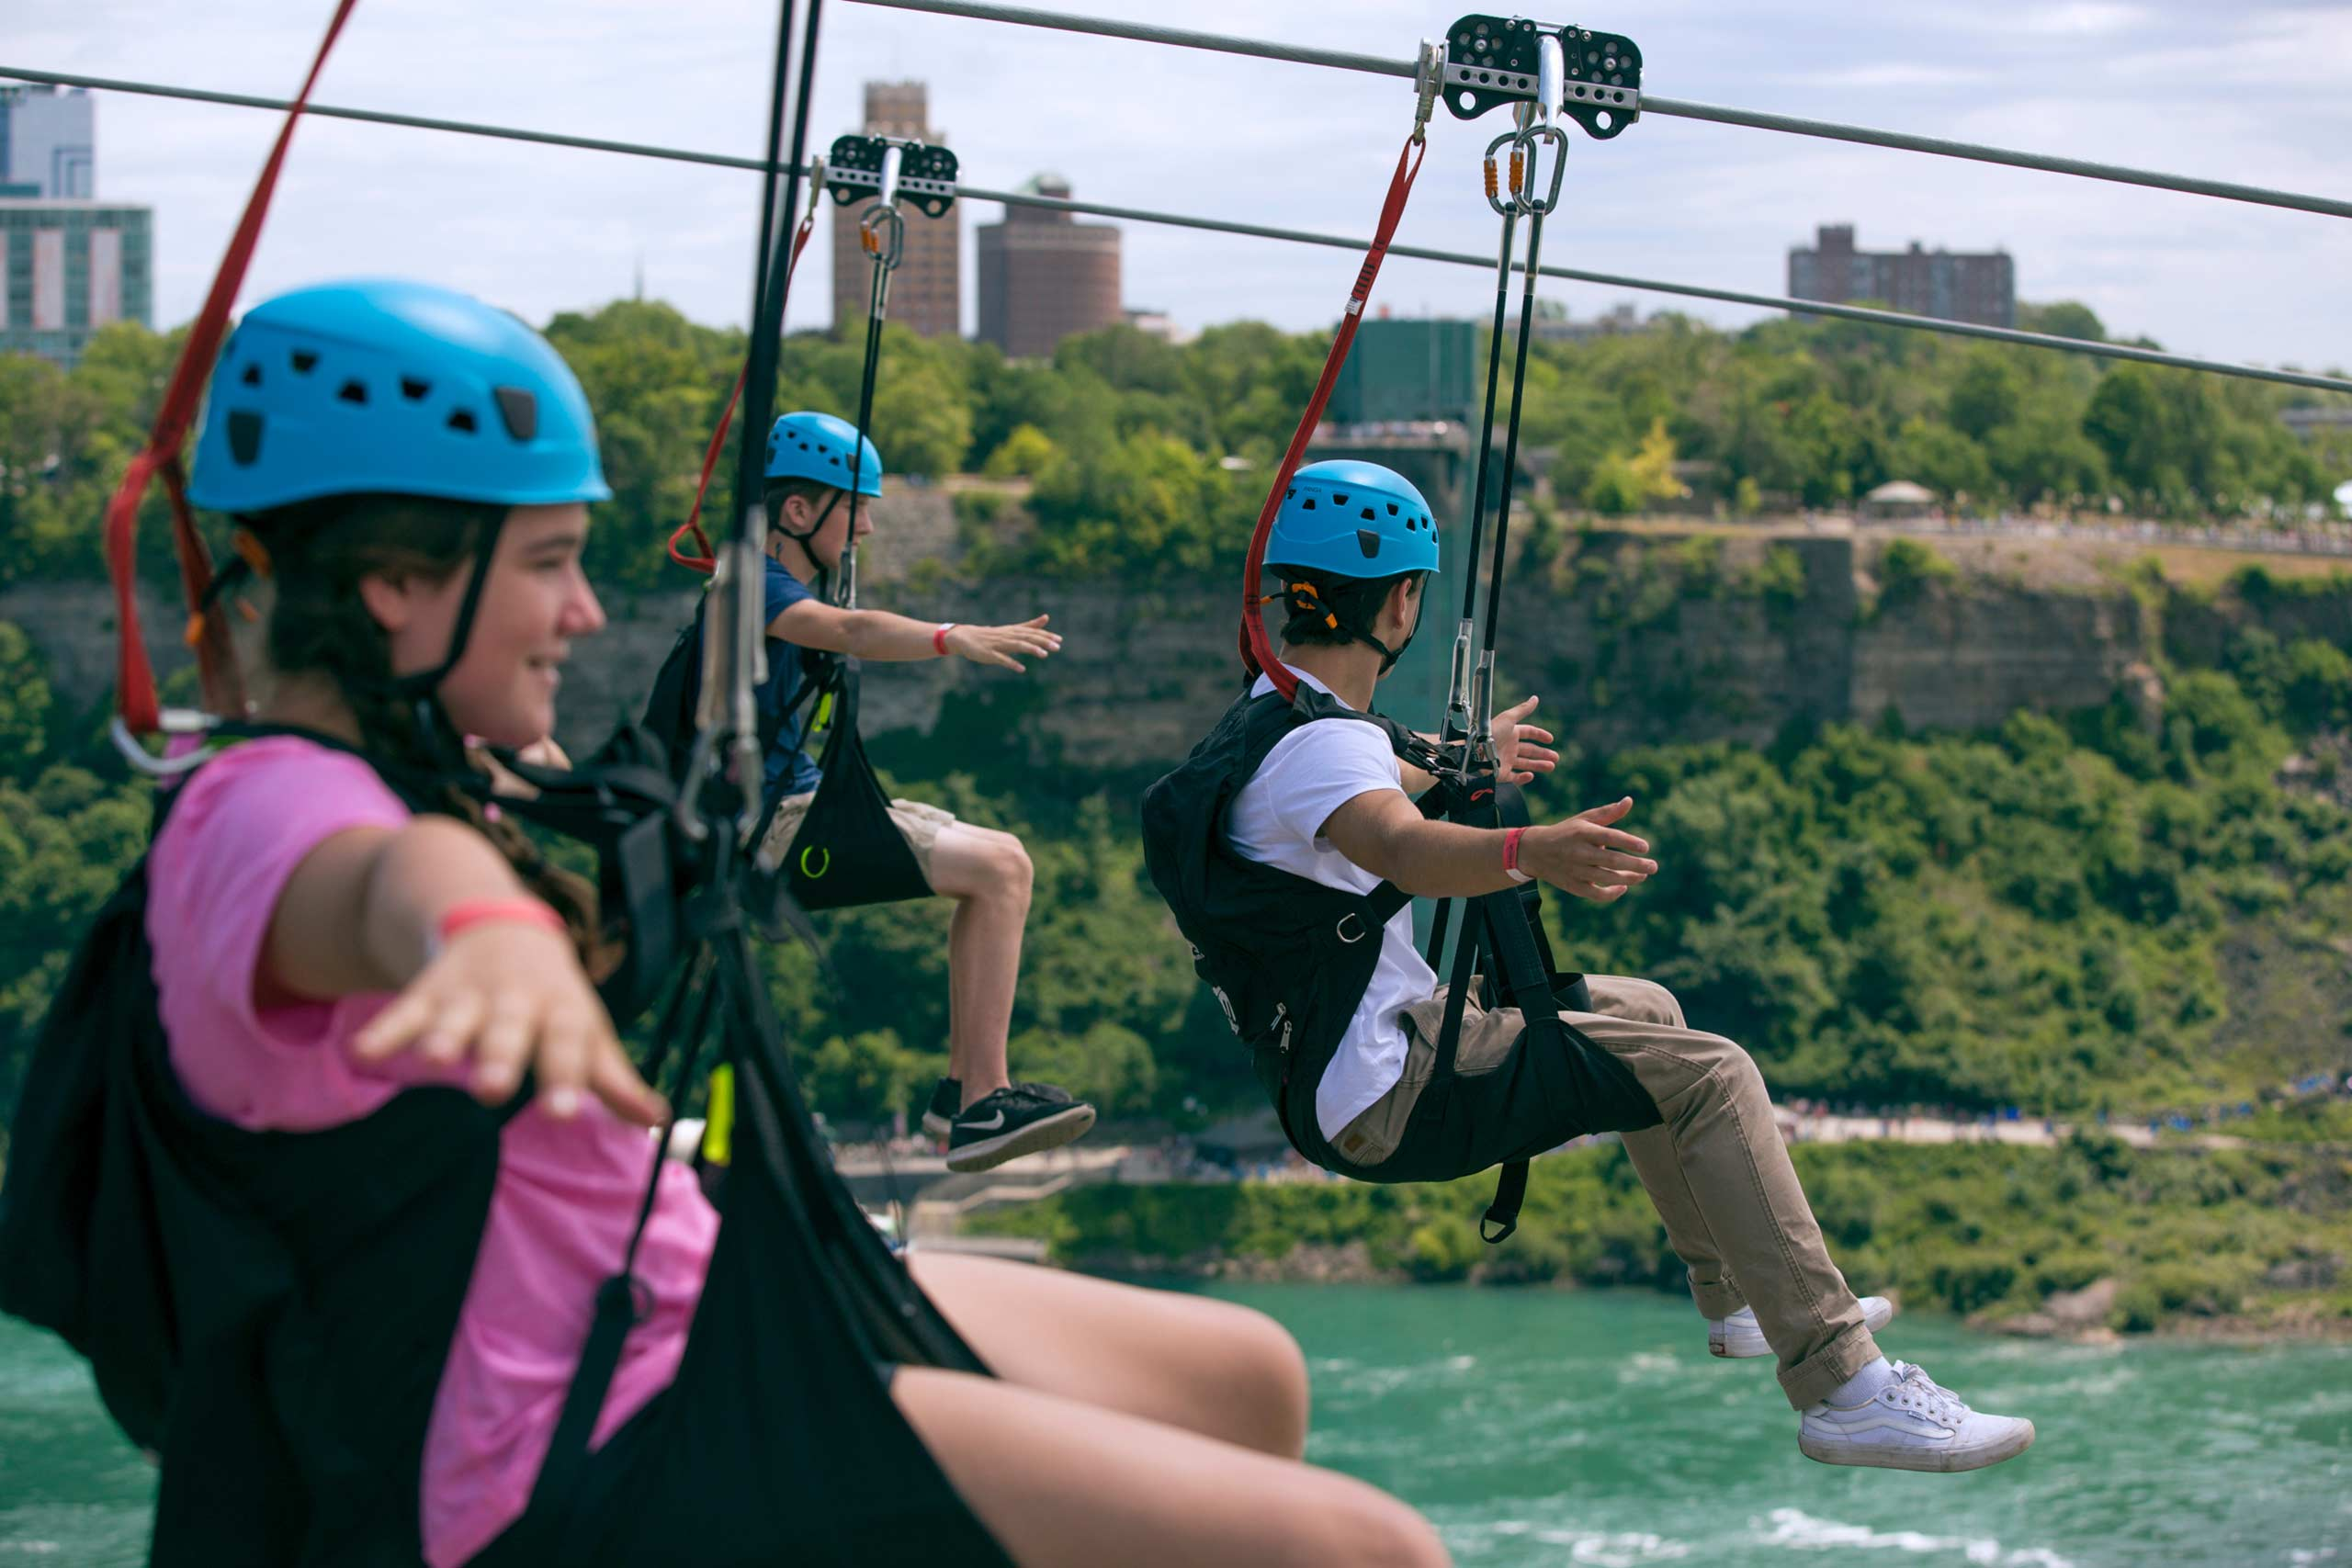 wheelchair zip wire shelby williams chairs zipline niagara falls ontario canada wildplay mistrider